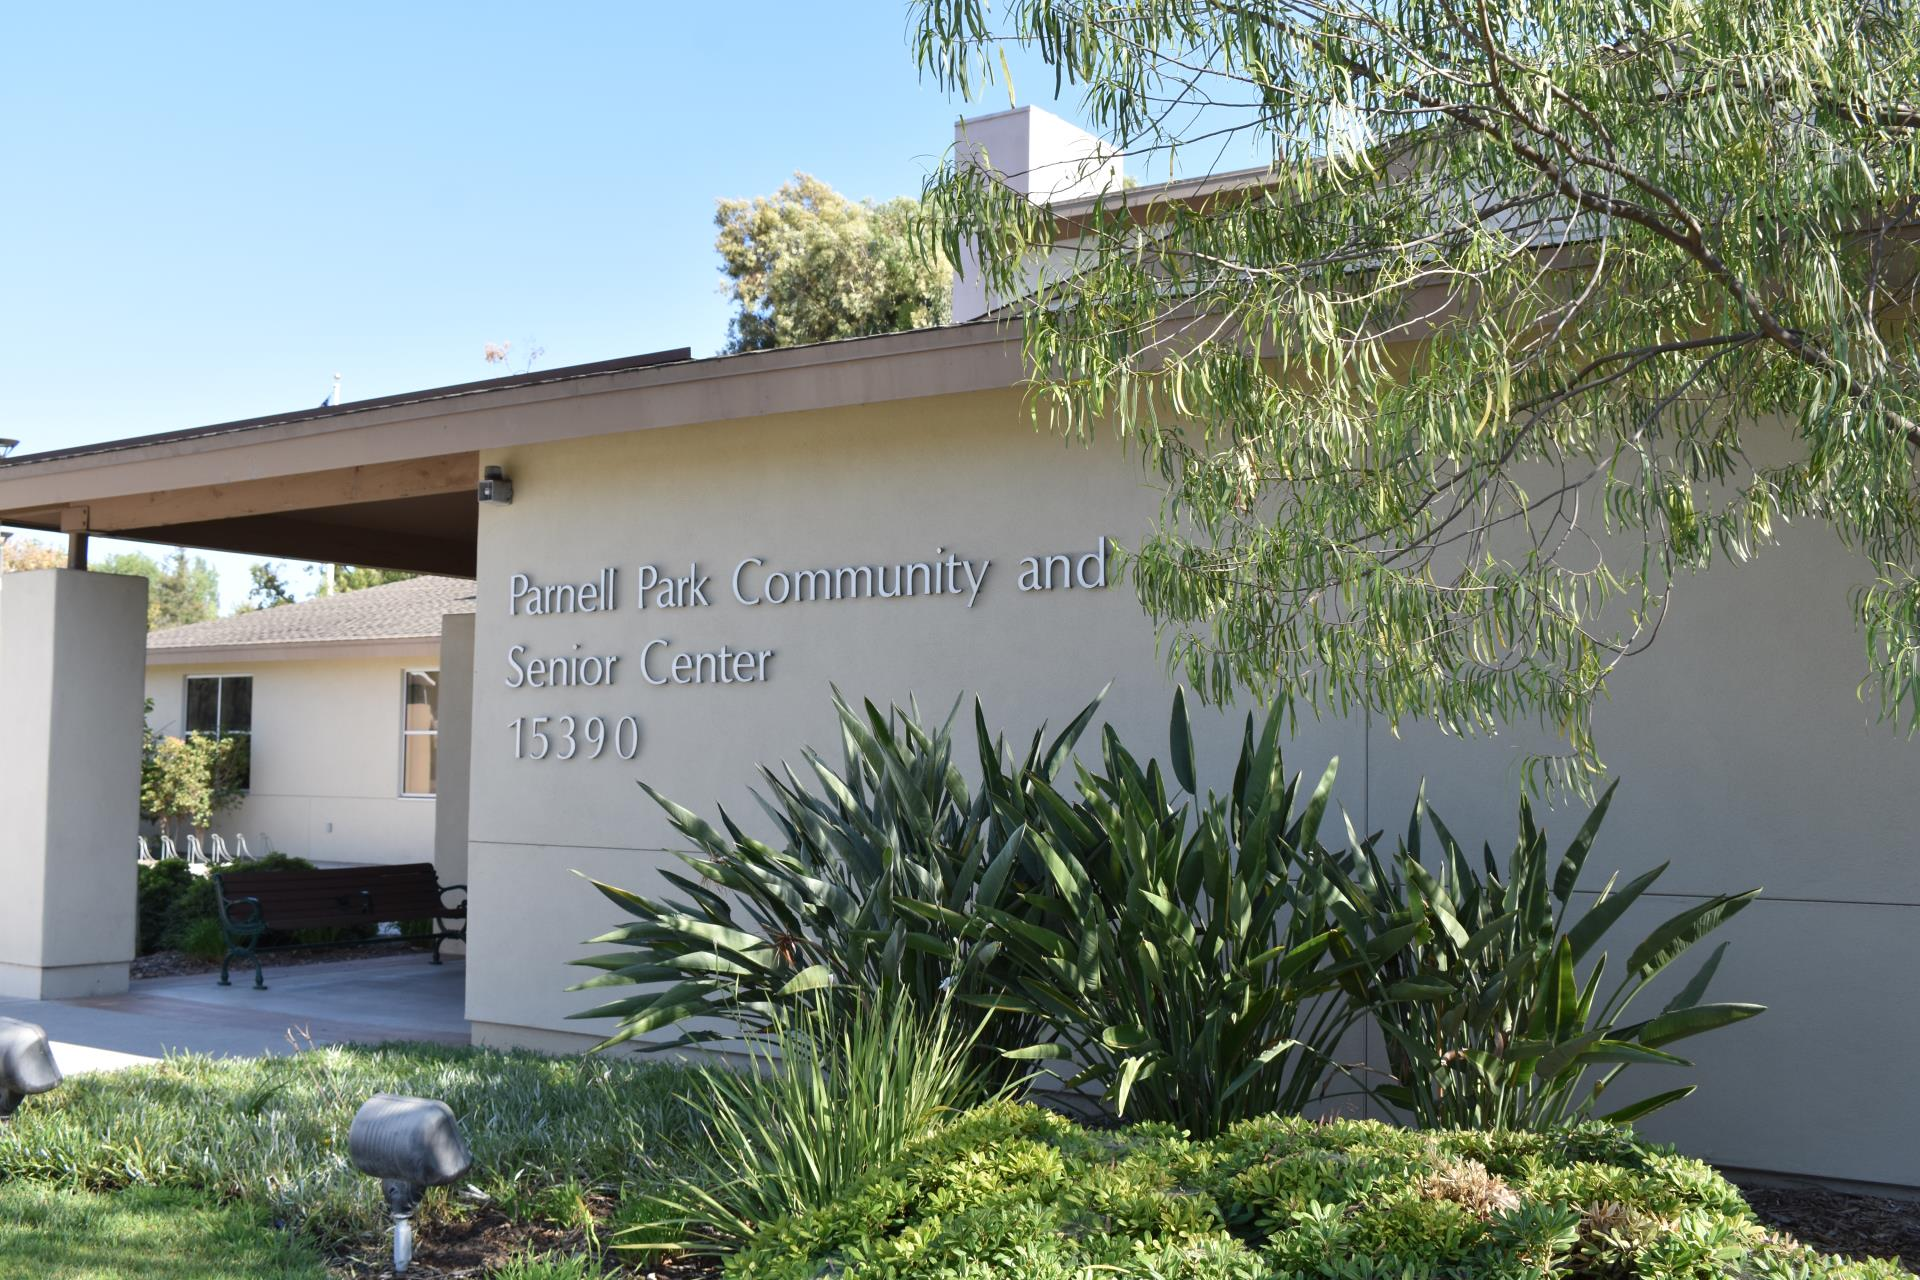 Senior Services | Whittier, CA - Parks, Recreation and